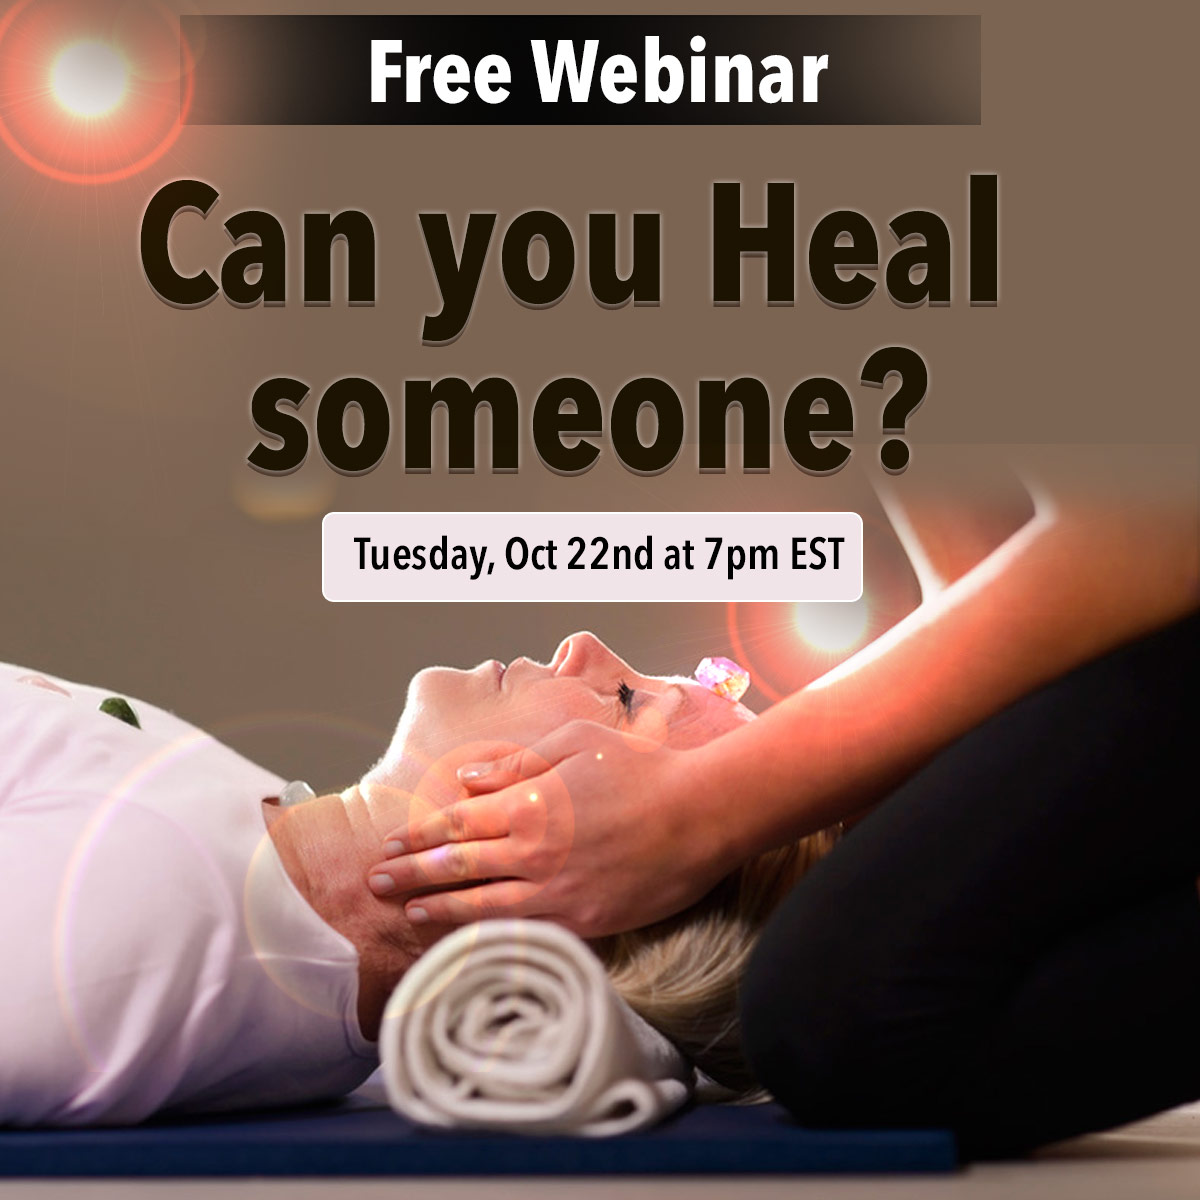 Webinar - Can you heal someone?